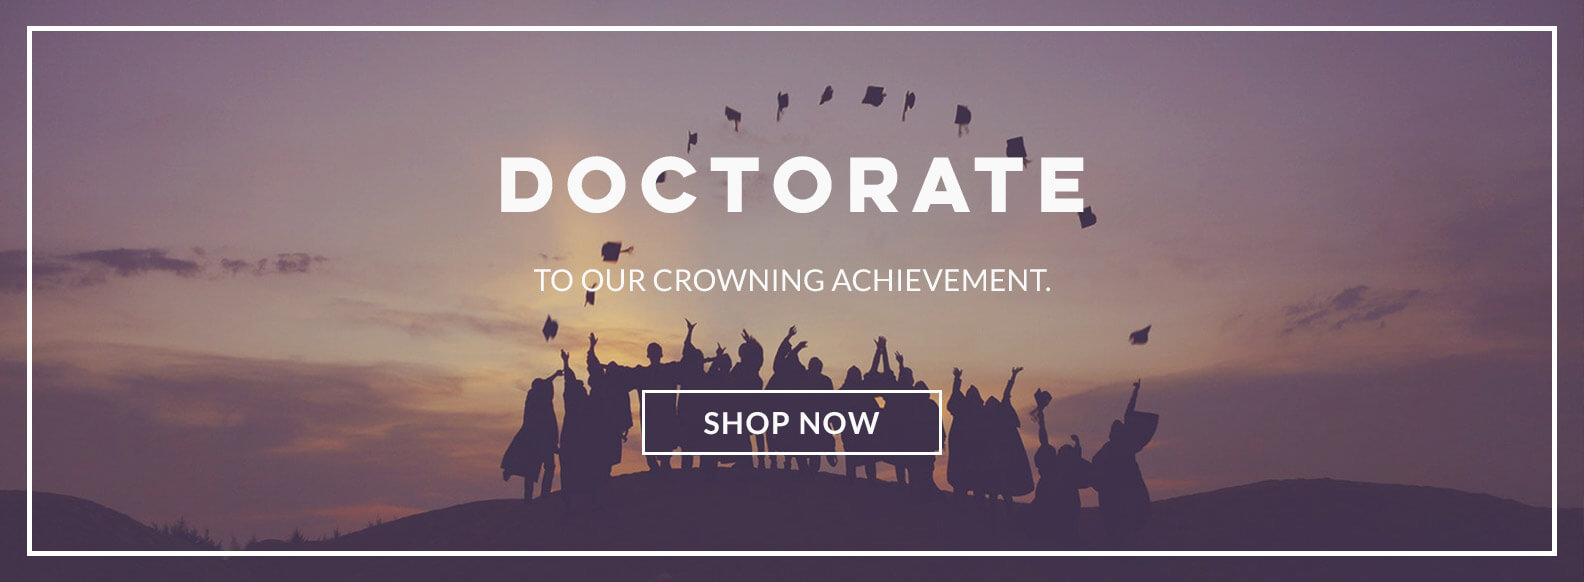 doctorate page title